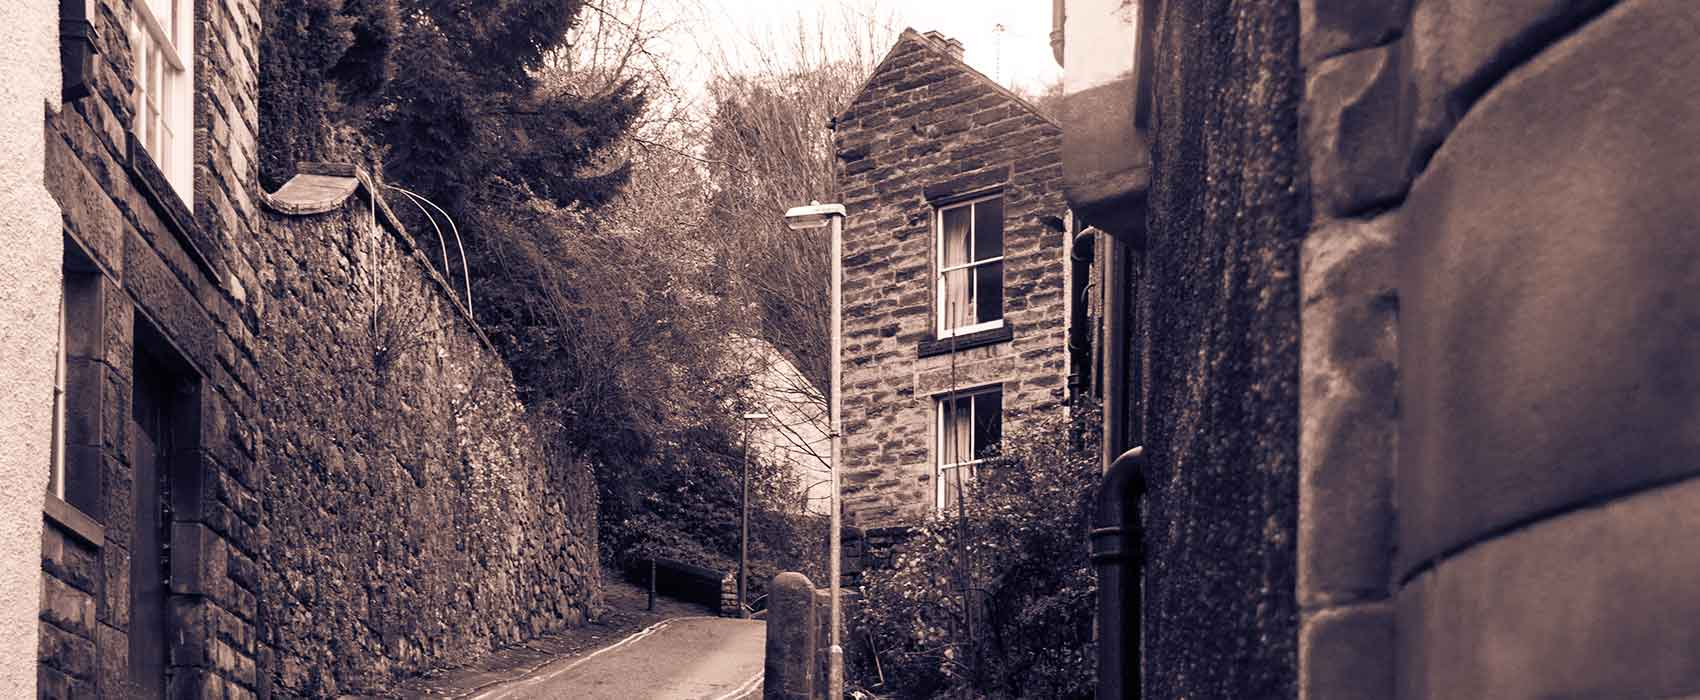 Black and white picture of Matlock Bath houses